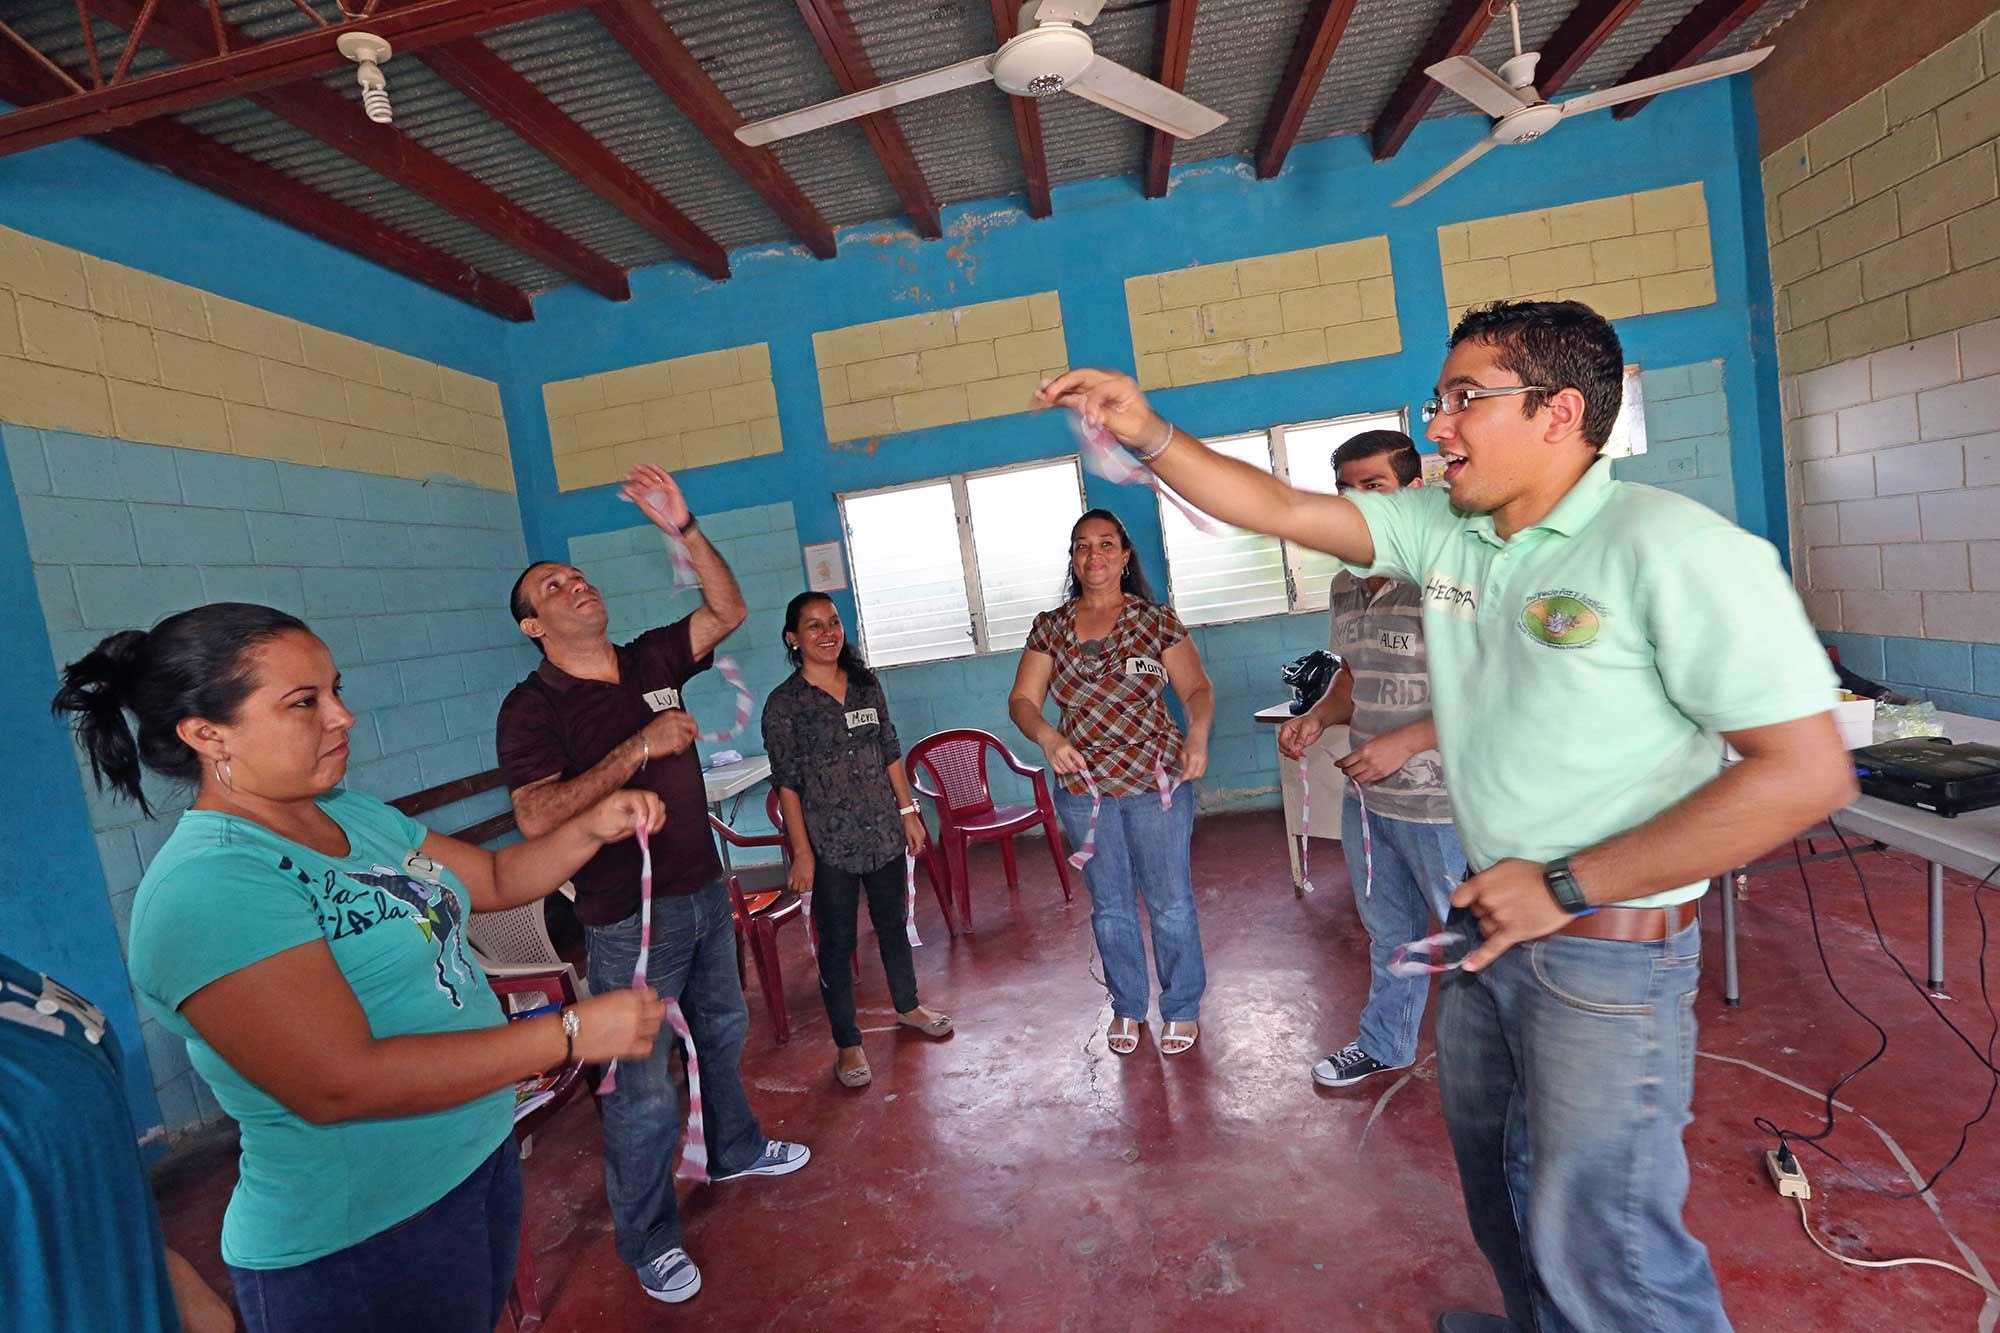 A group standing in a circle throw thin strips of plastic in the air.